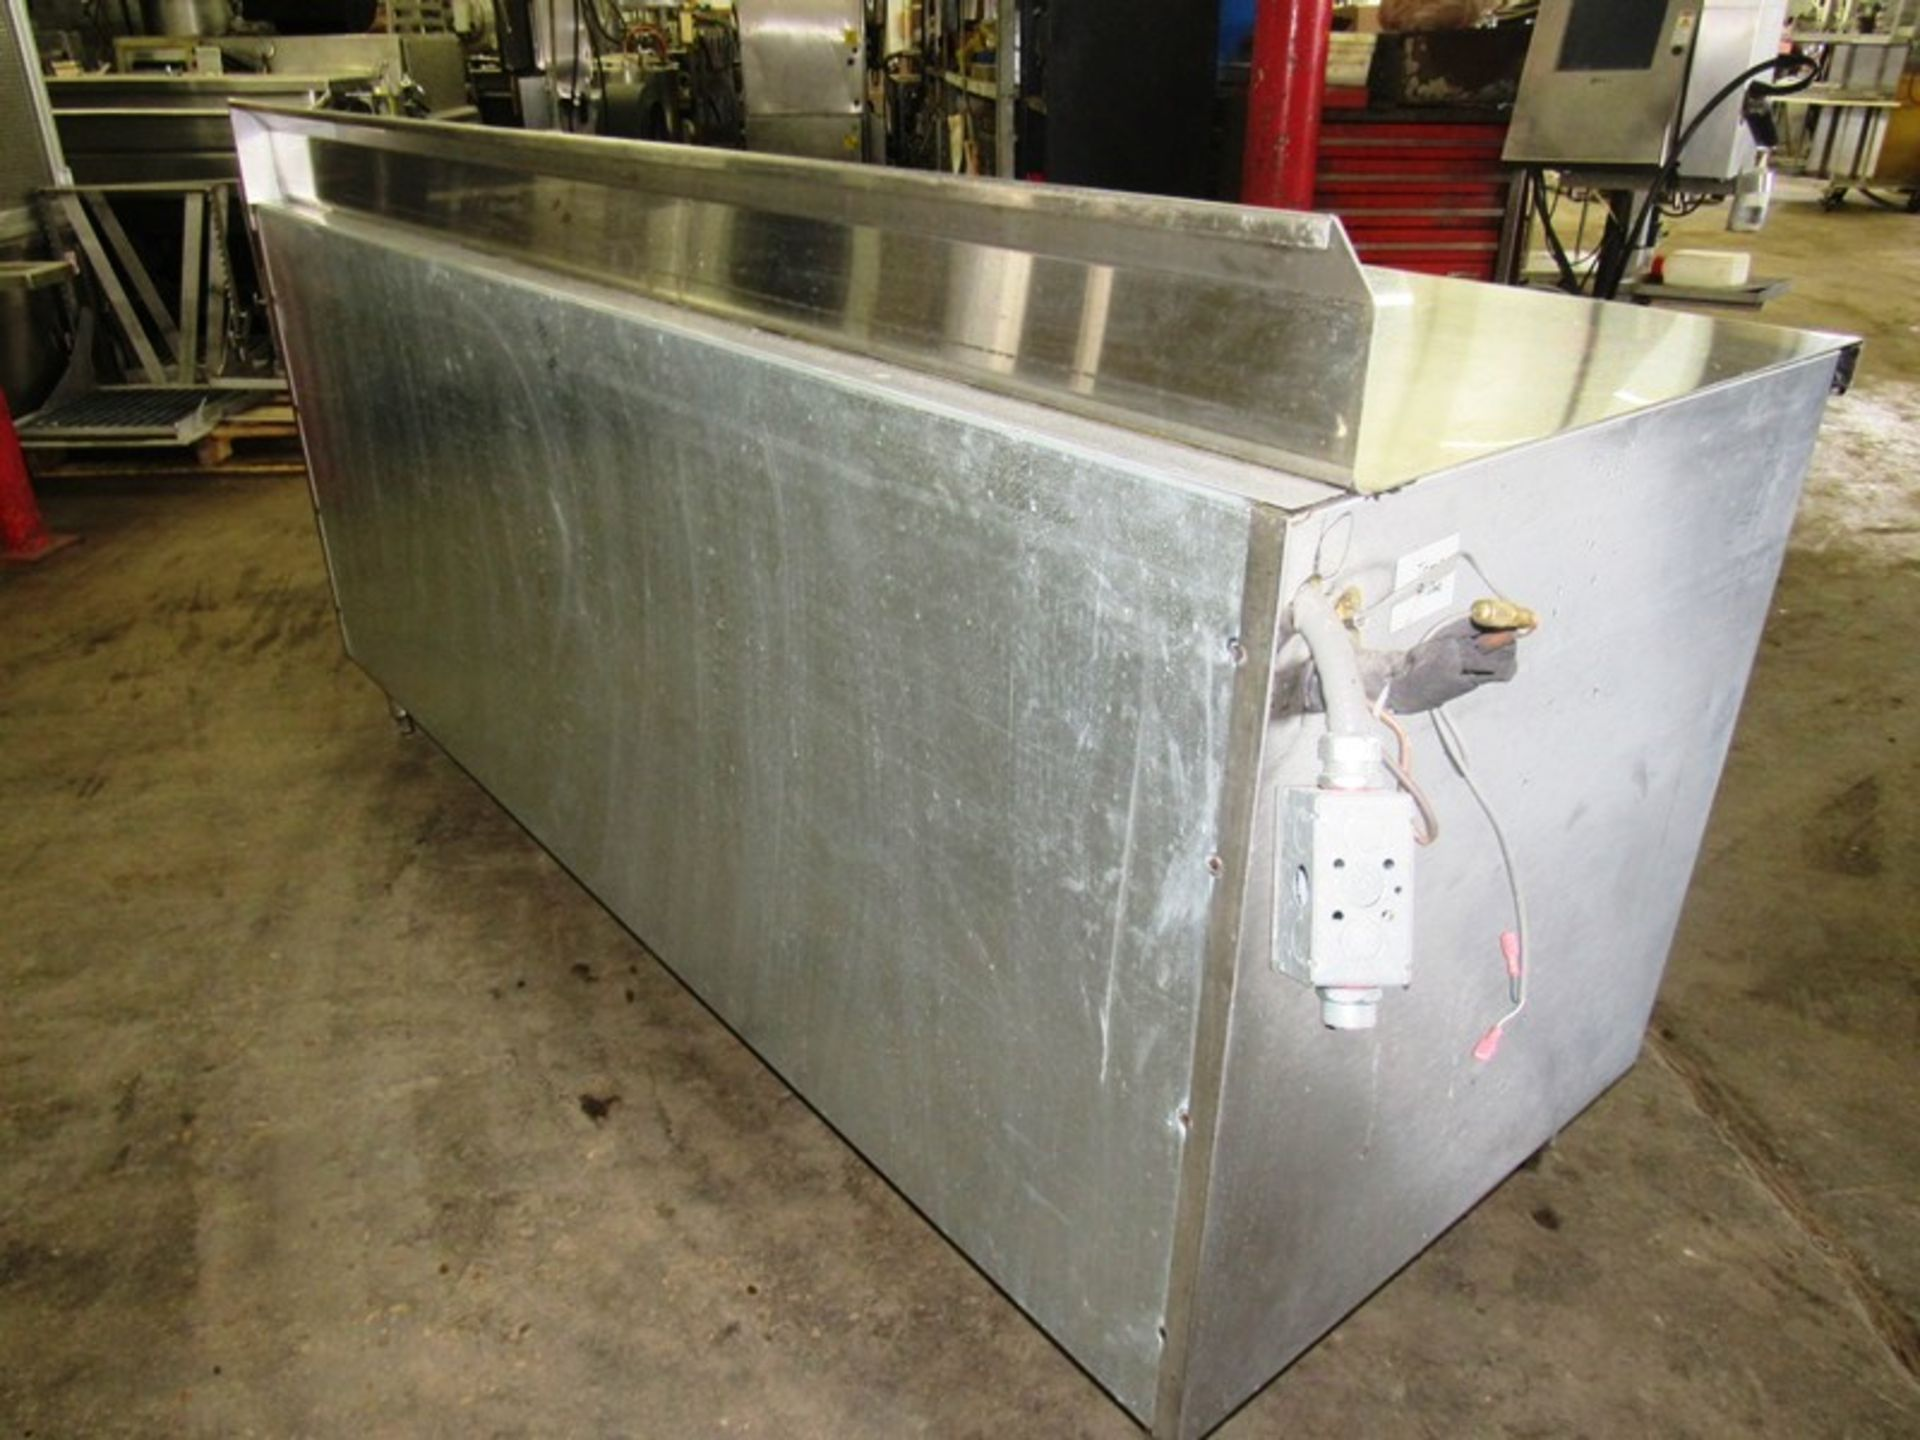 "Nationwide Fabrication Mdl. 3457-50 Stainless Steel Refrigerated Prep Table, 3 doors, 7 shelves, 80"" - Image 3 of 7"